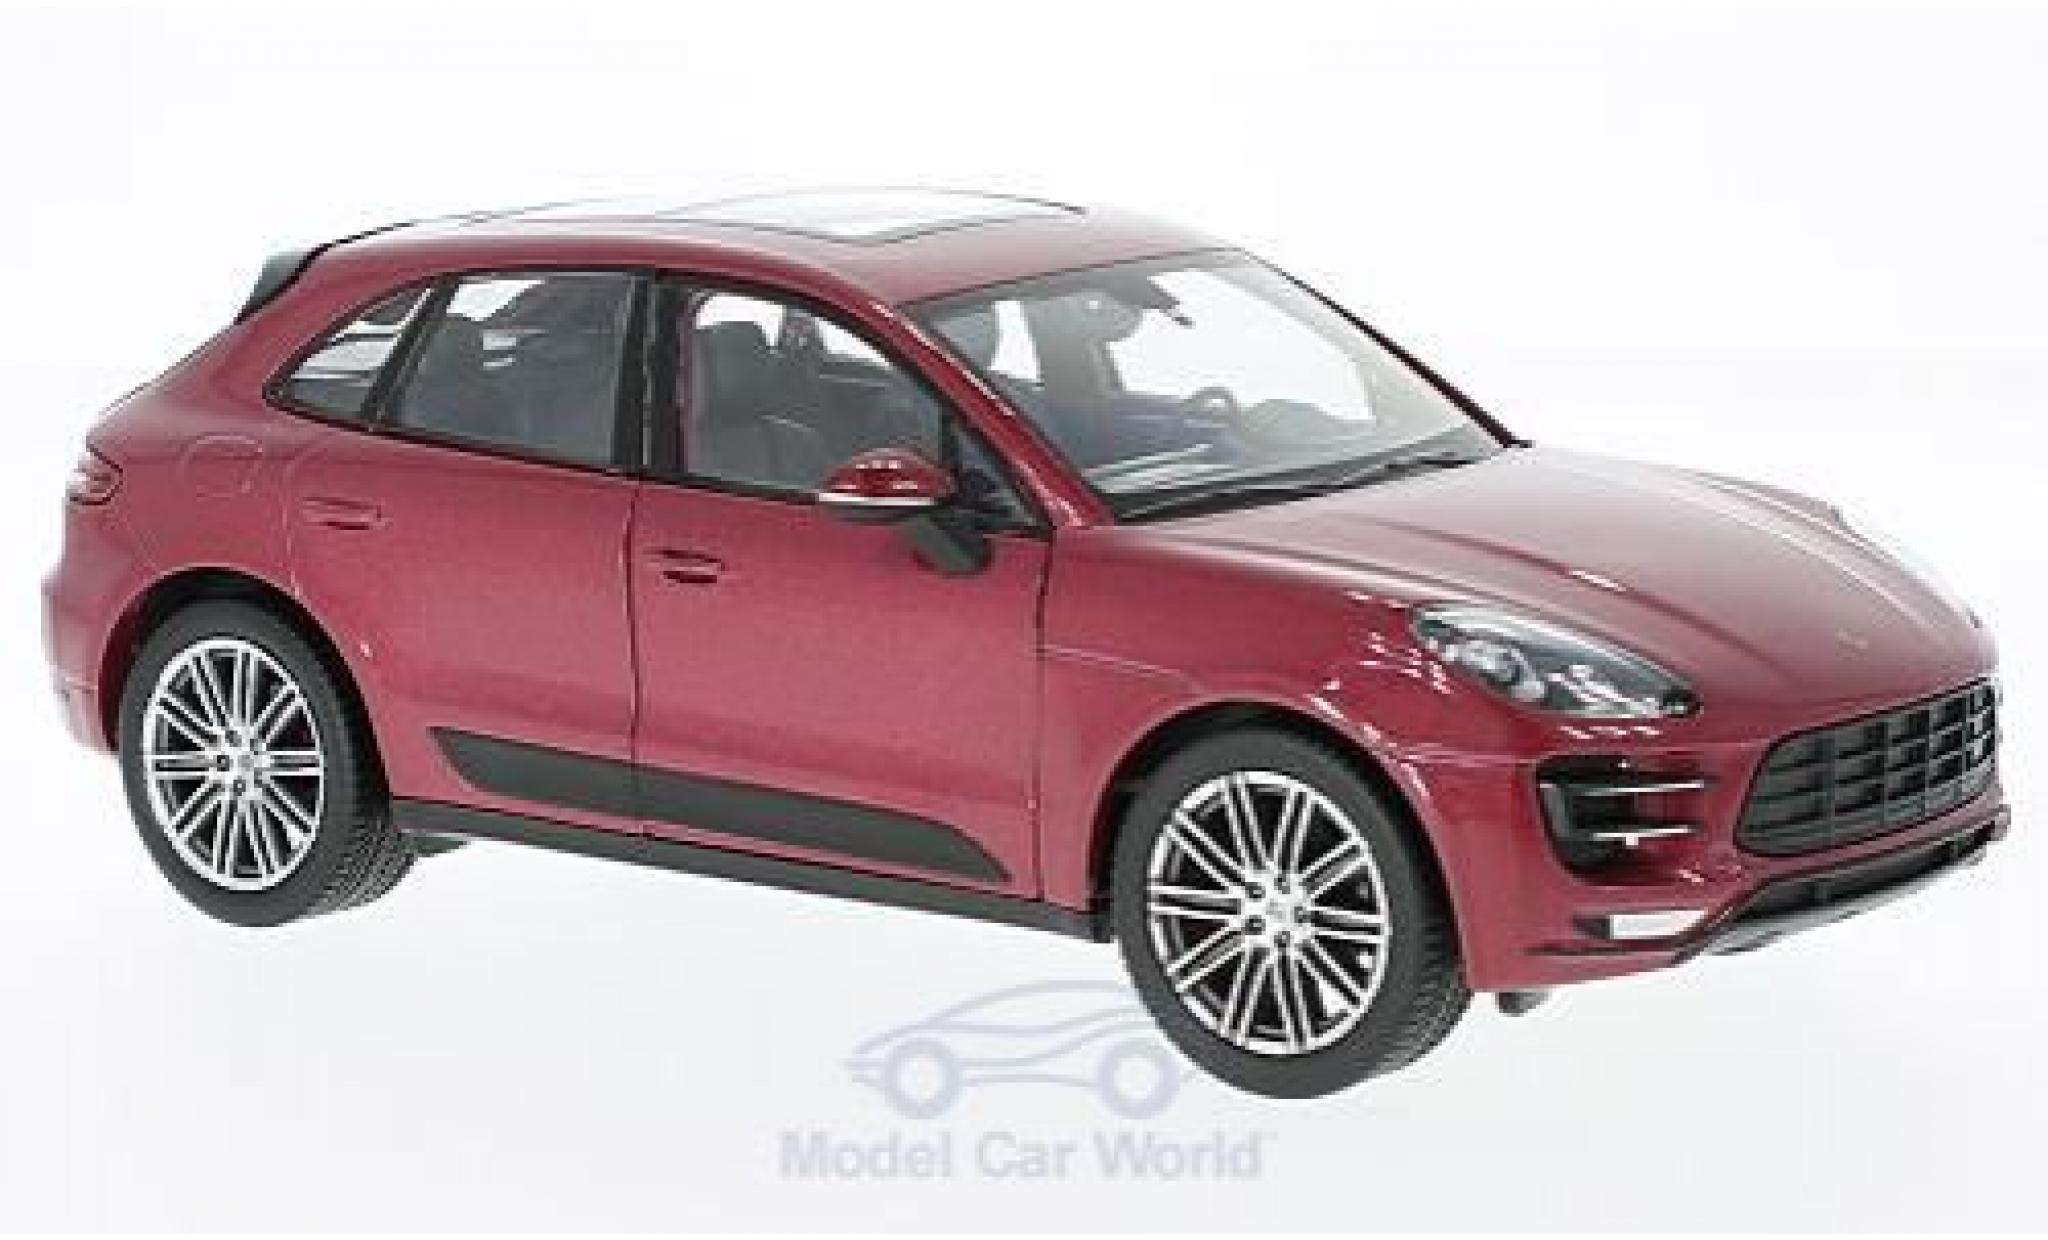 1:18 Scale Porsche MACAN TURBO 2013 Metal Diecast Model Car collection Red